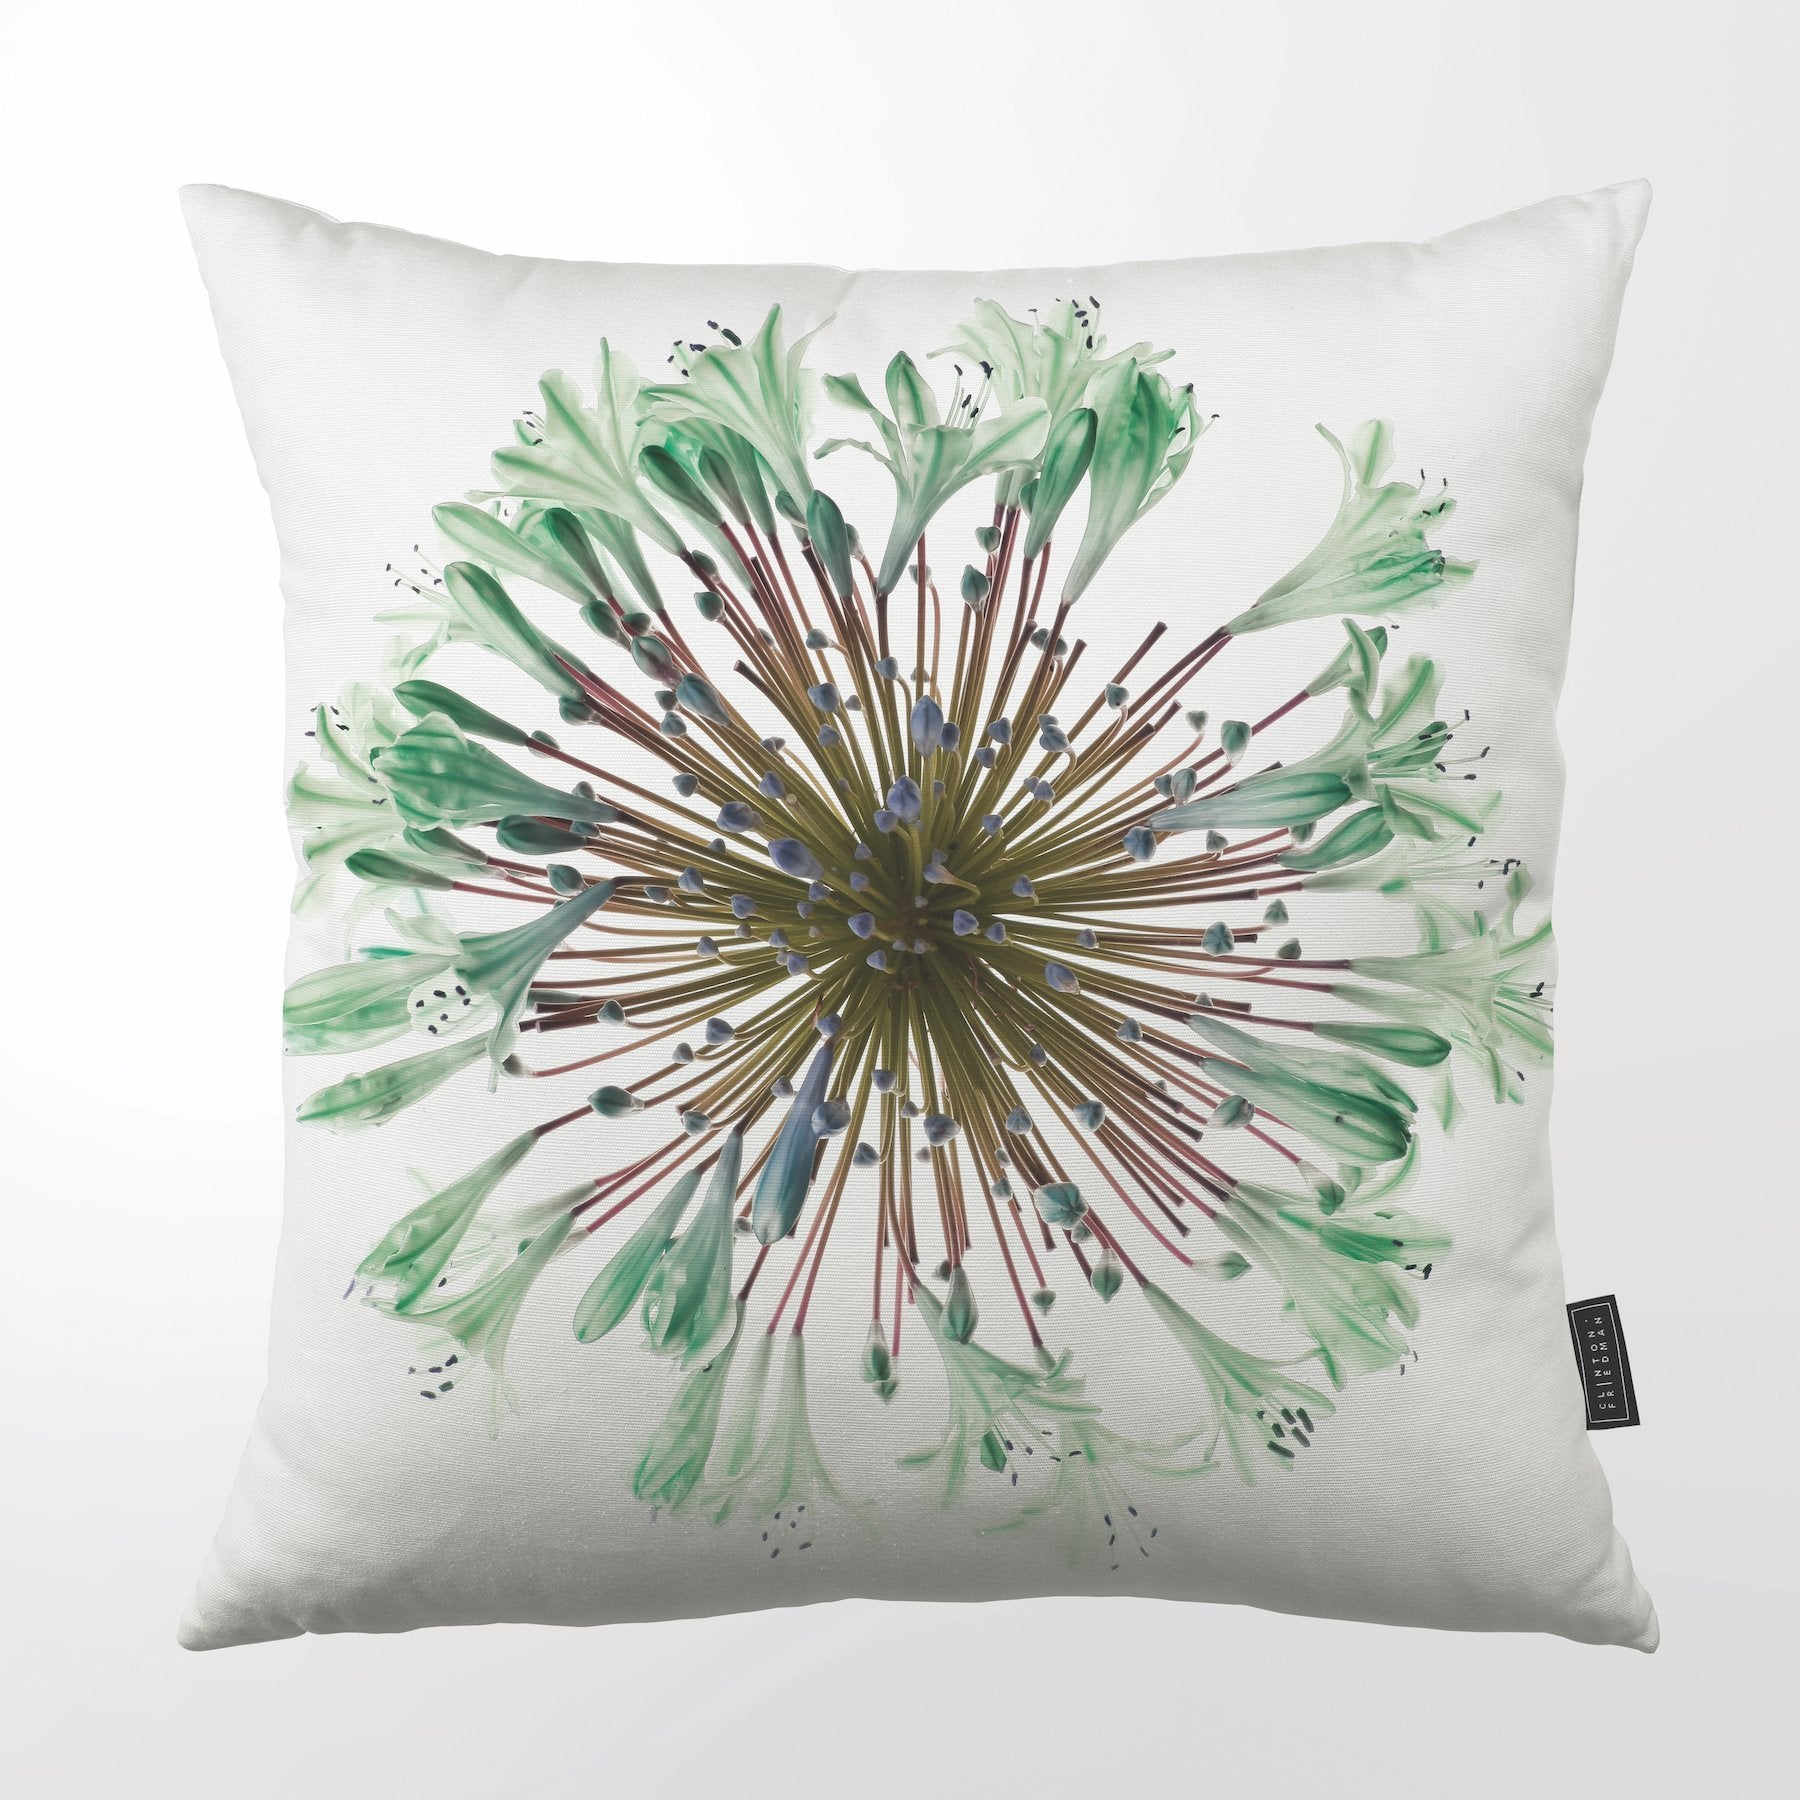 CLINTON FRIEDMAN USA NEW YORK GREEN AGAPANTHUS THROW PILLOW